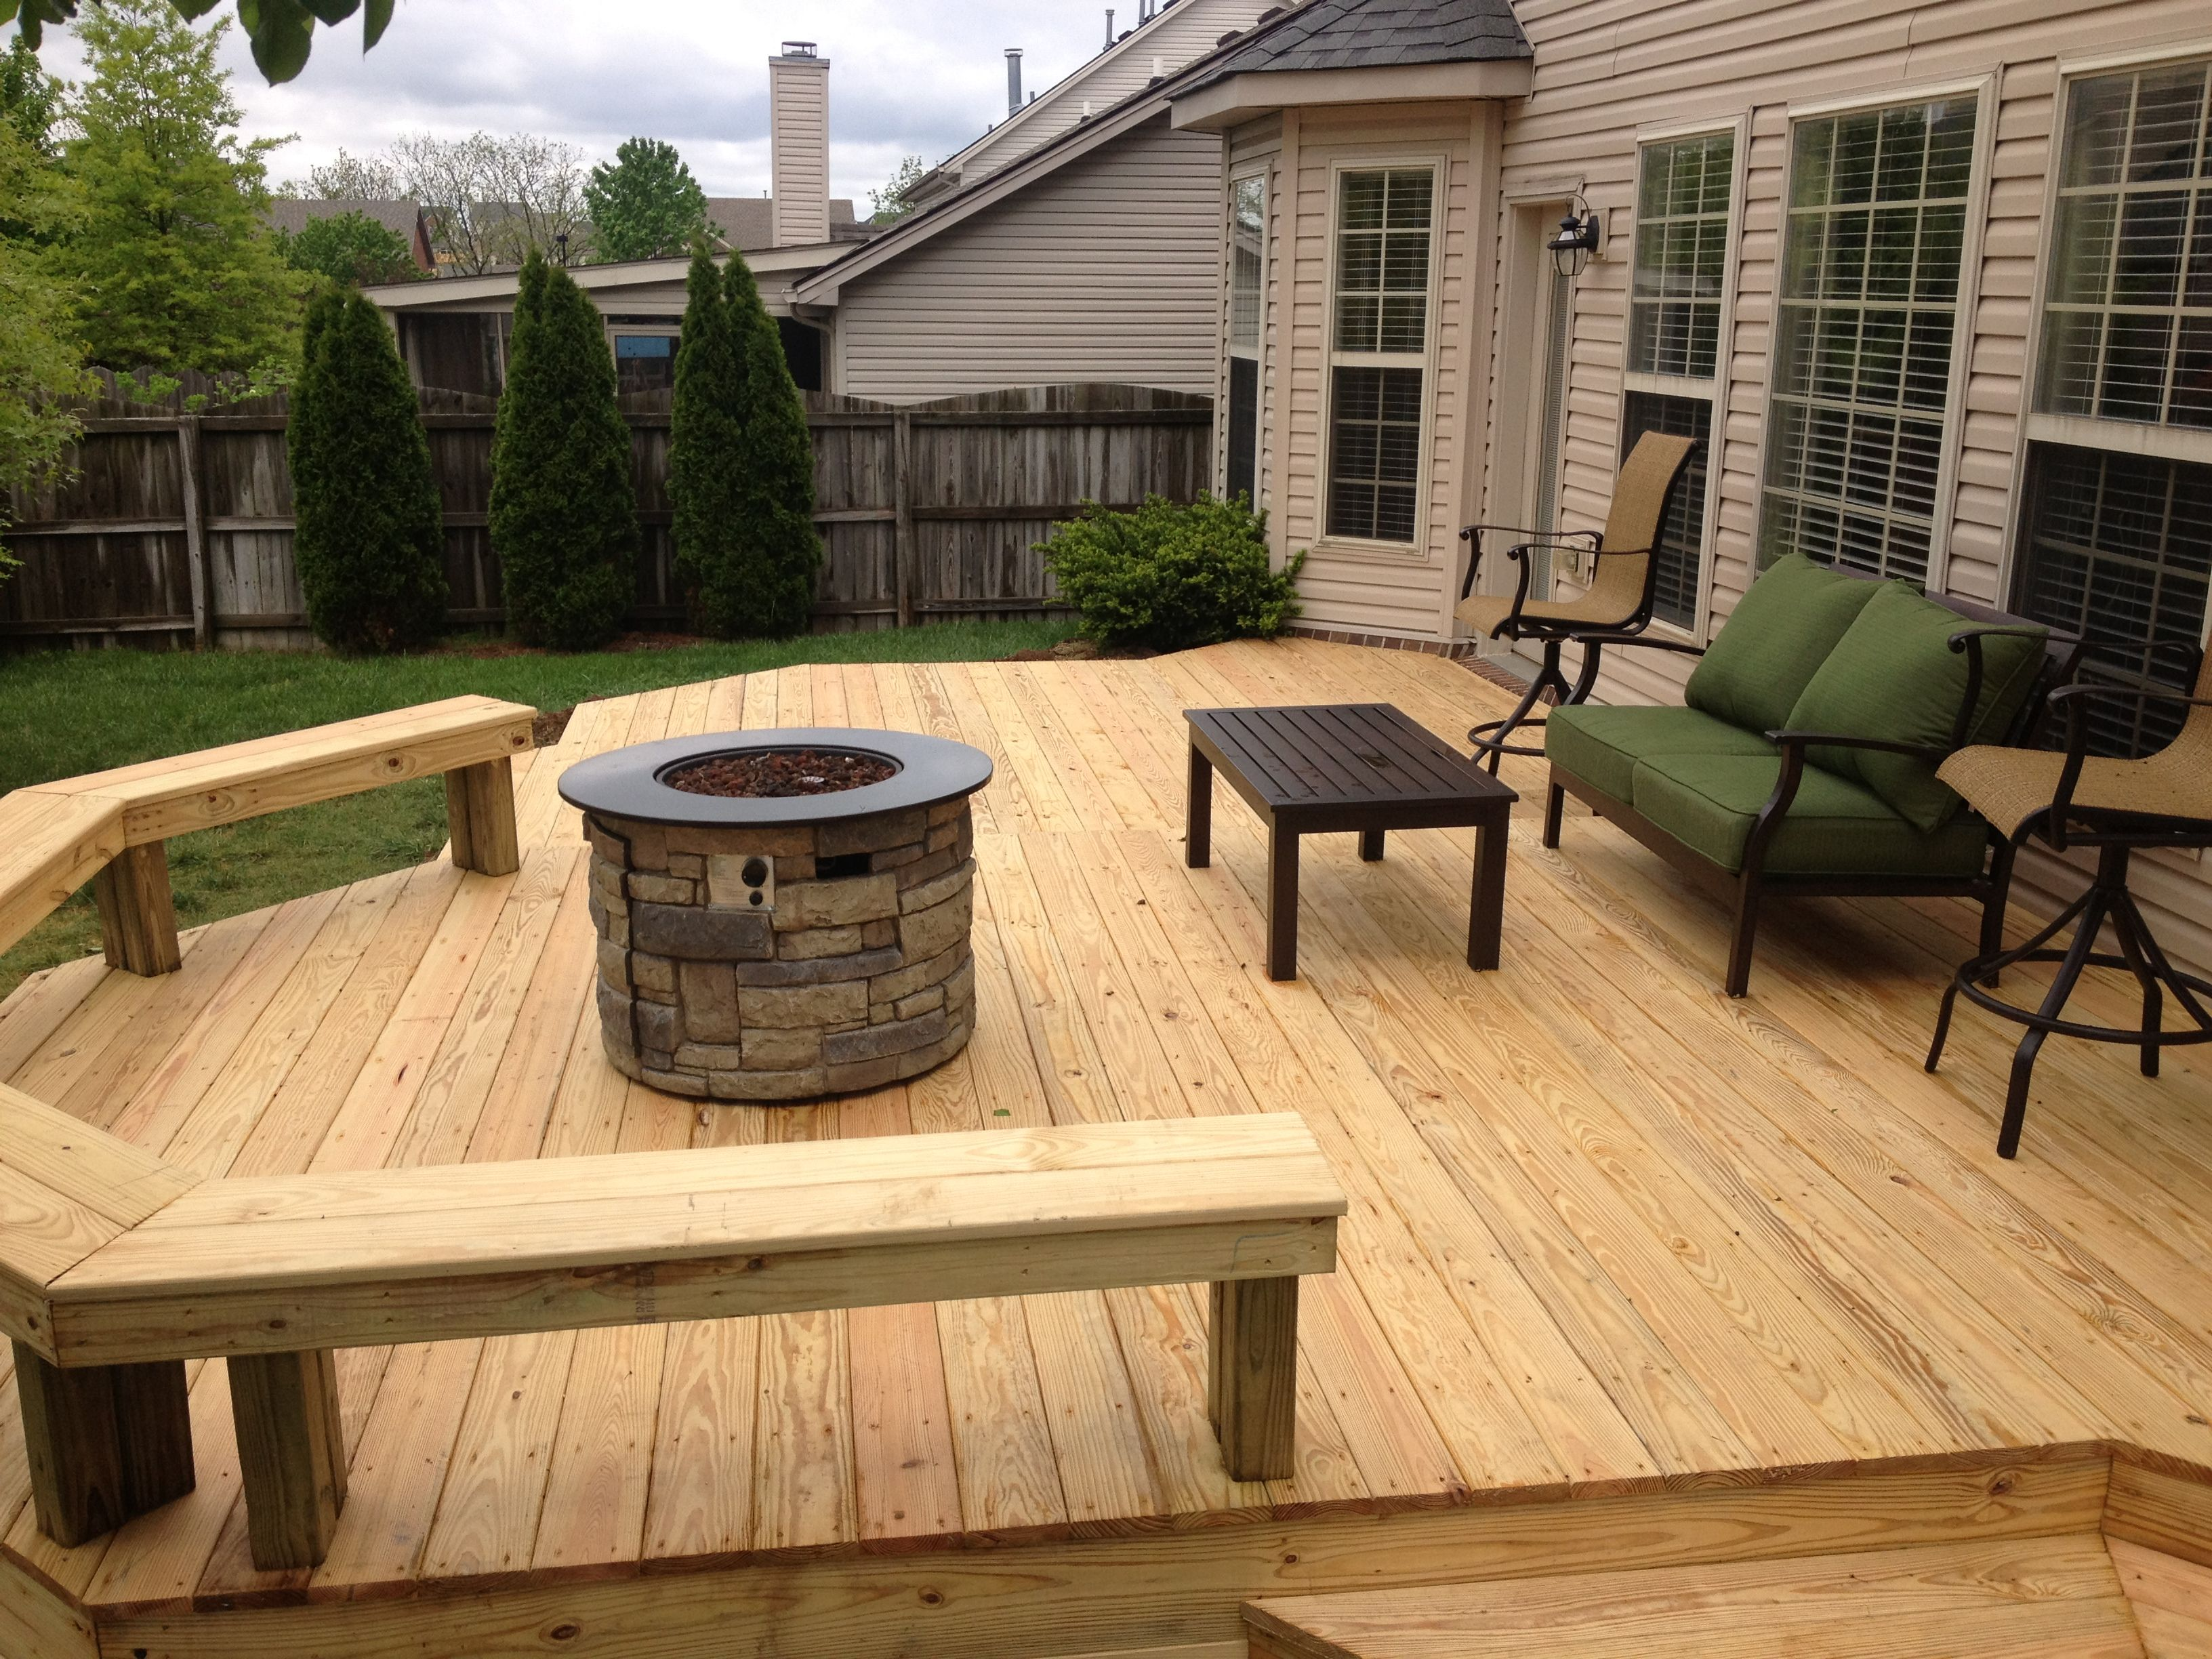 Decks With Benches And Planters | Bench - Planter Combination on ...